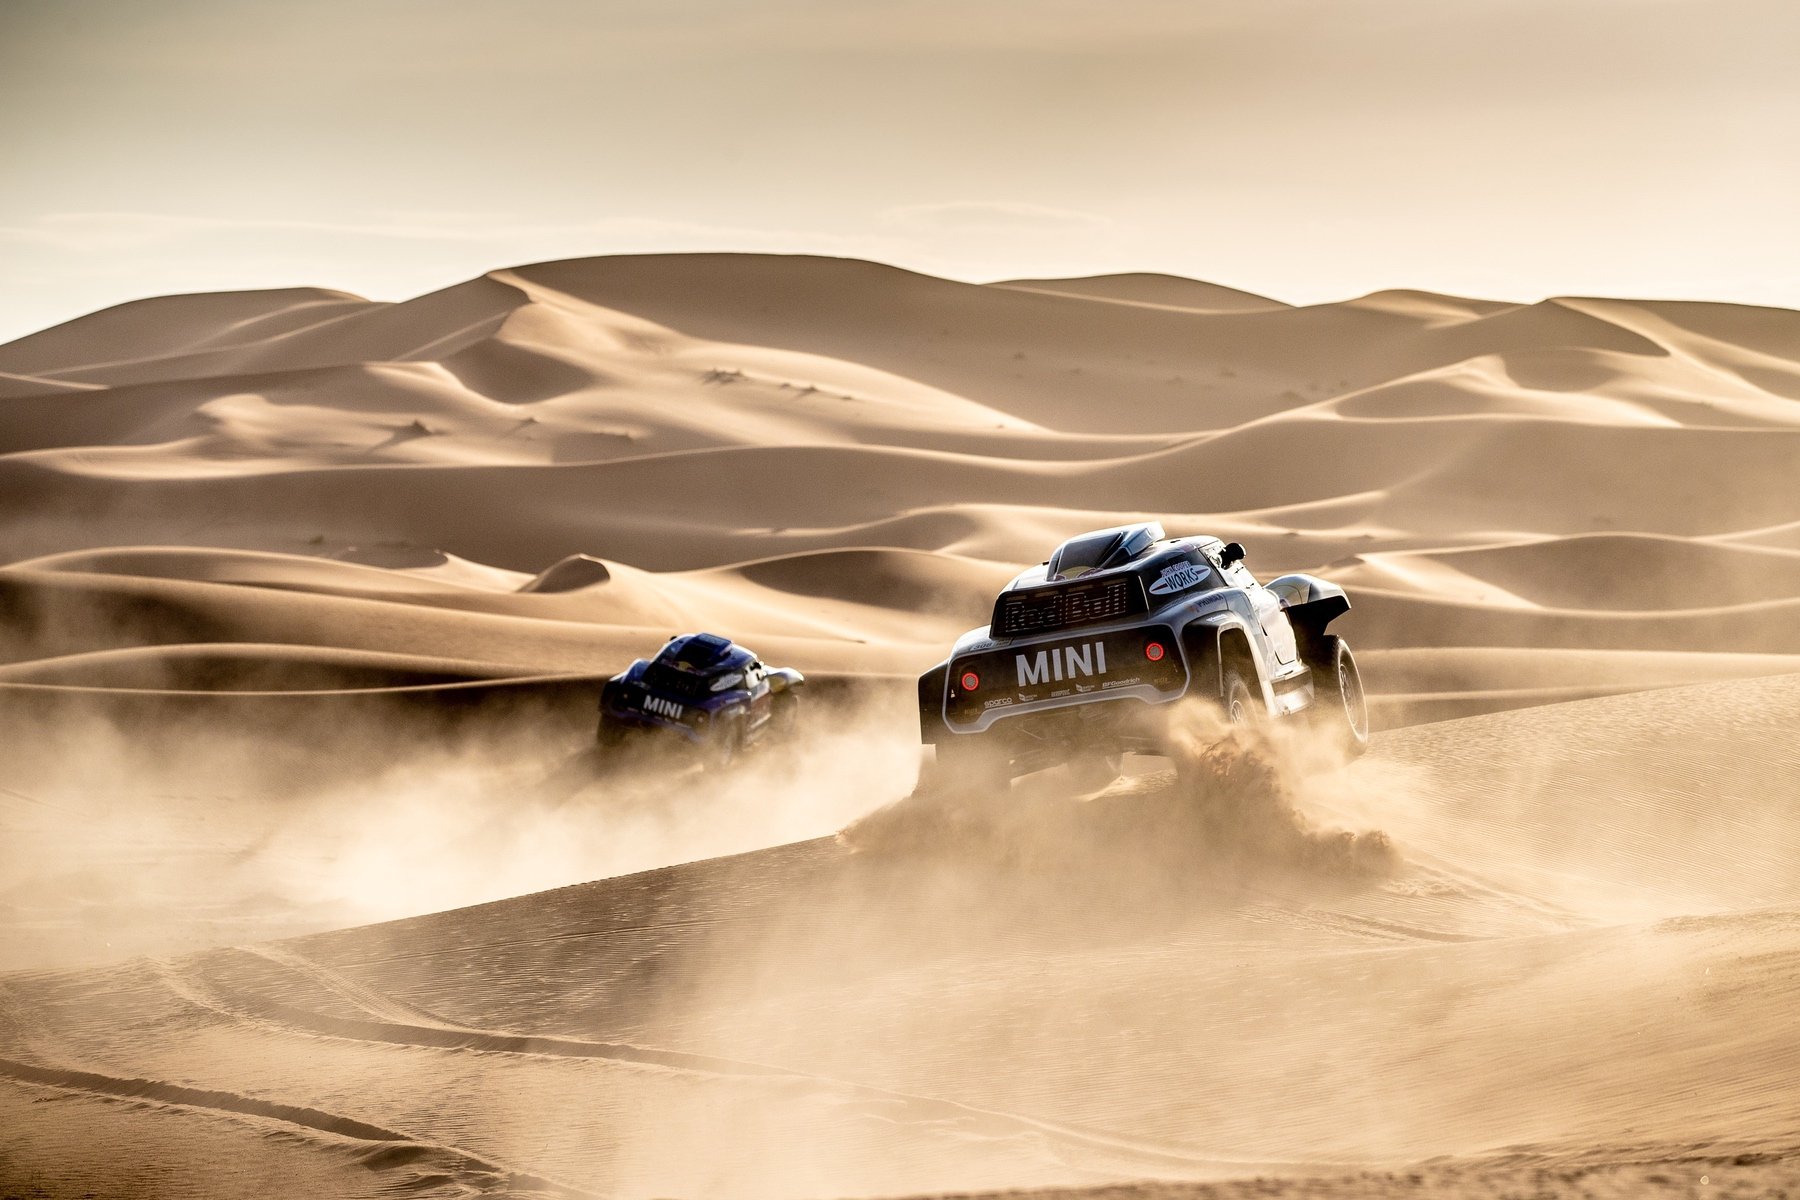 X-raid MINI JCW Team - 2019 Dakar Rally